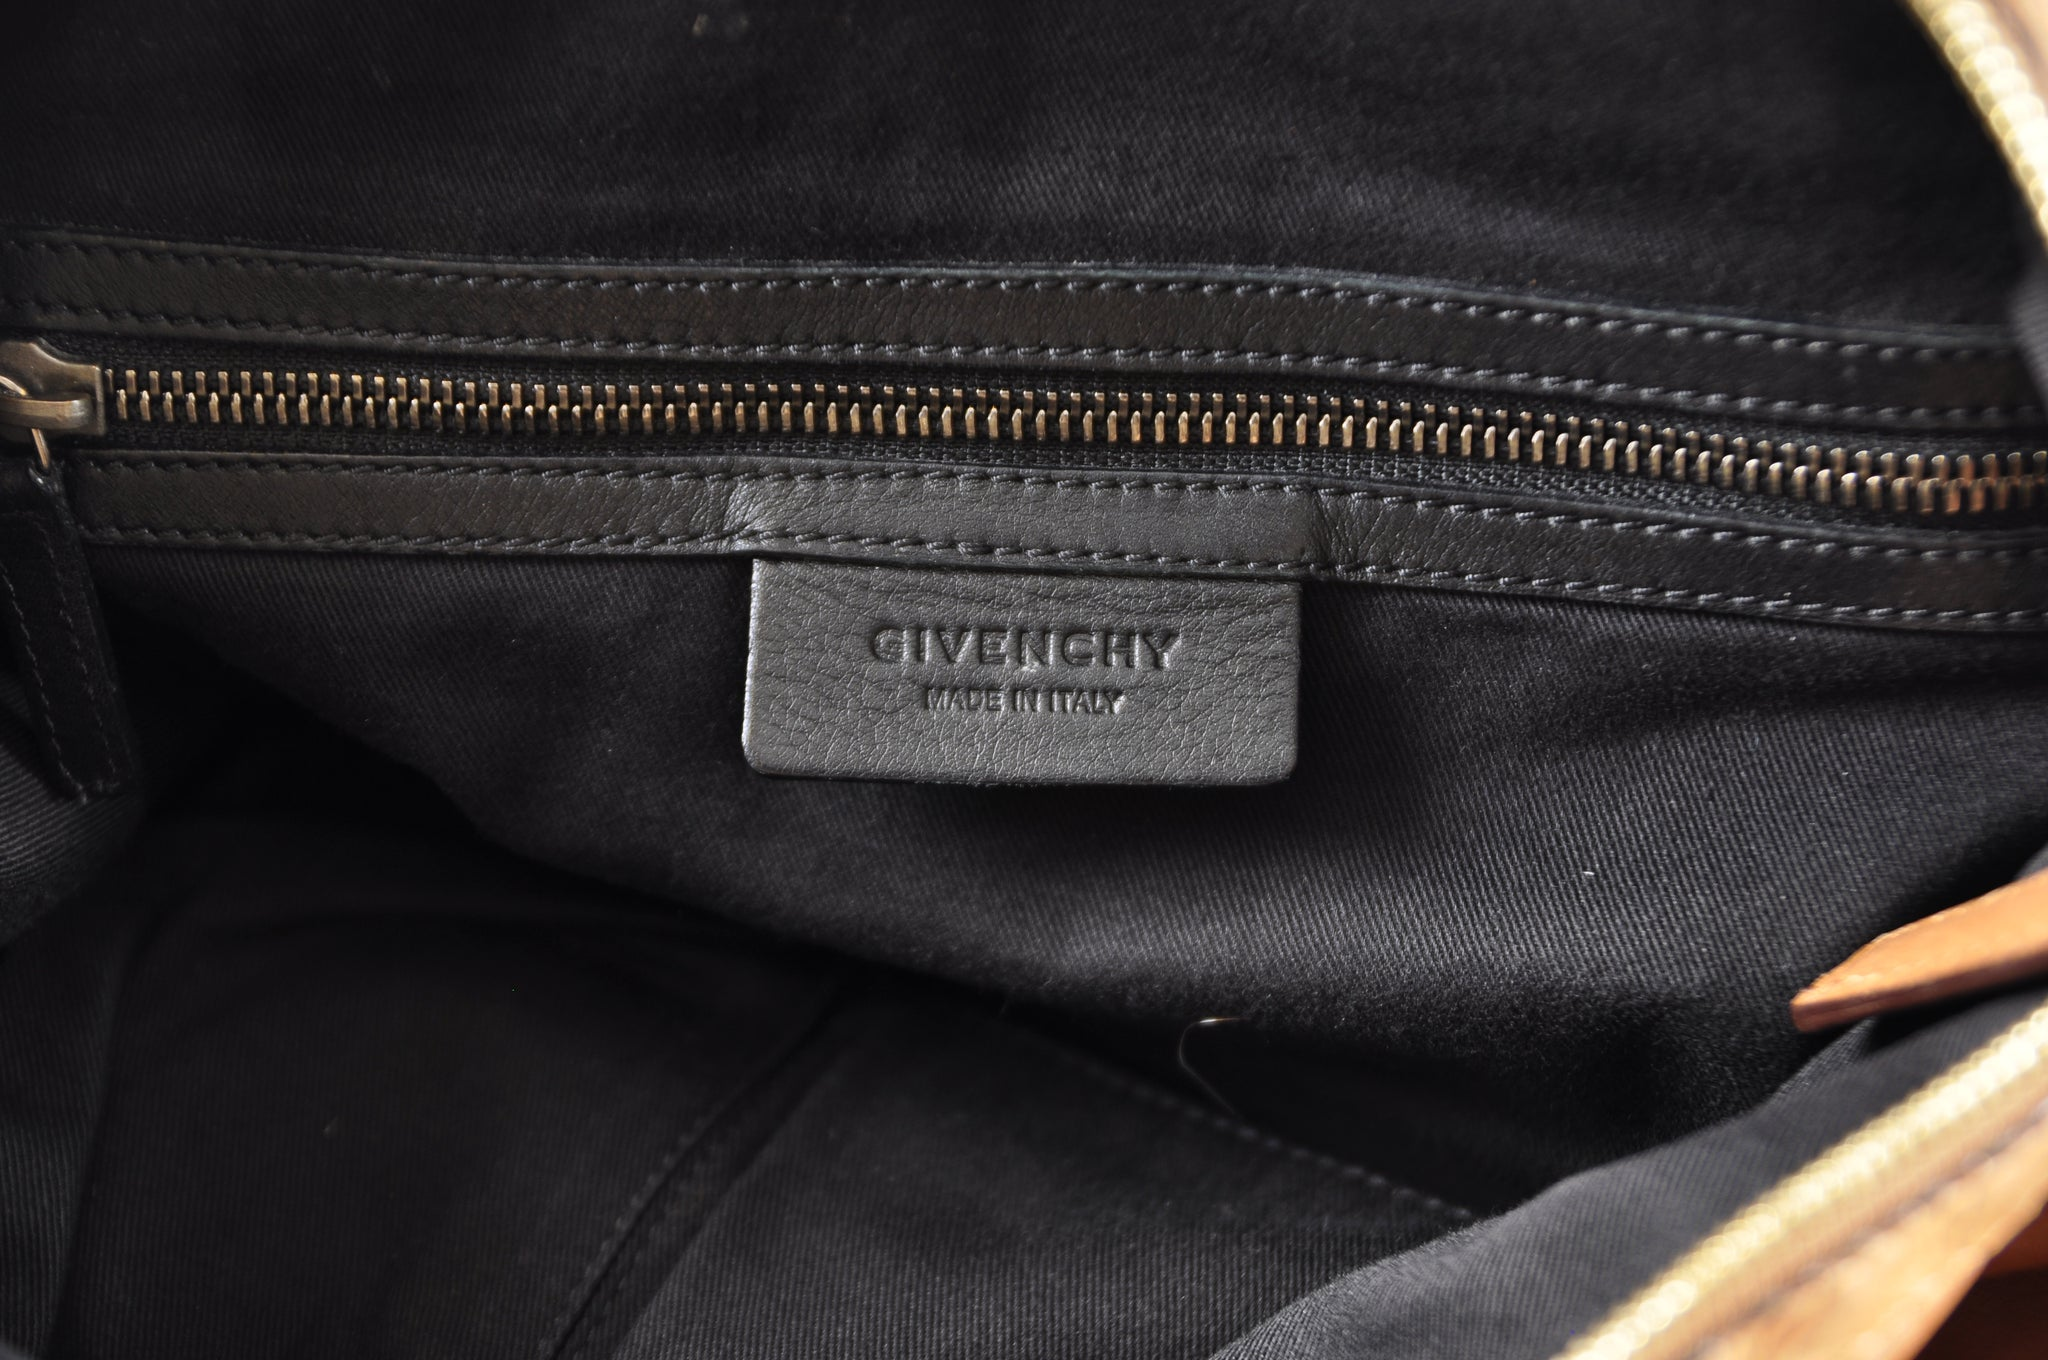 Givenchy Nightingale Soft Leather Tricolor Medium Bag Brown/Light Tan/Black  MA1111